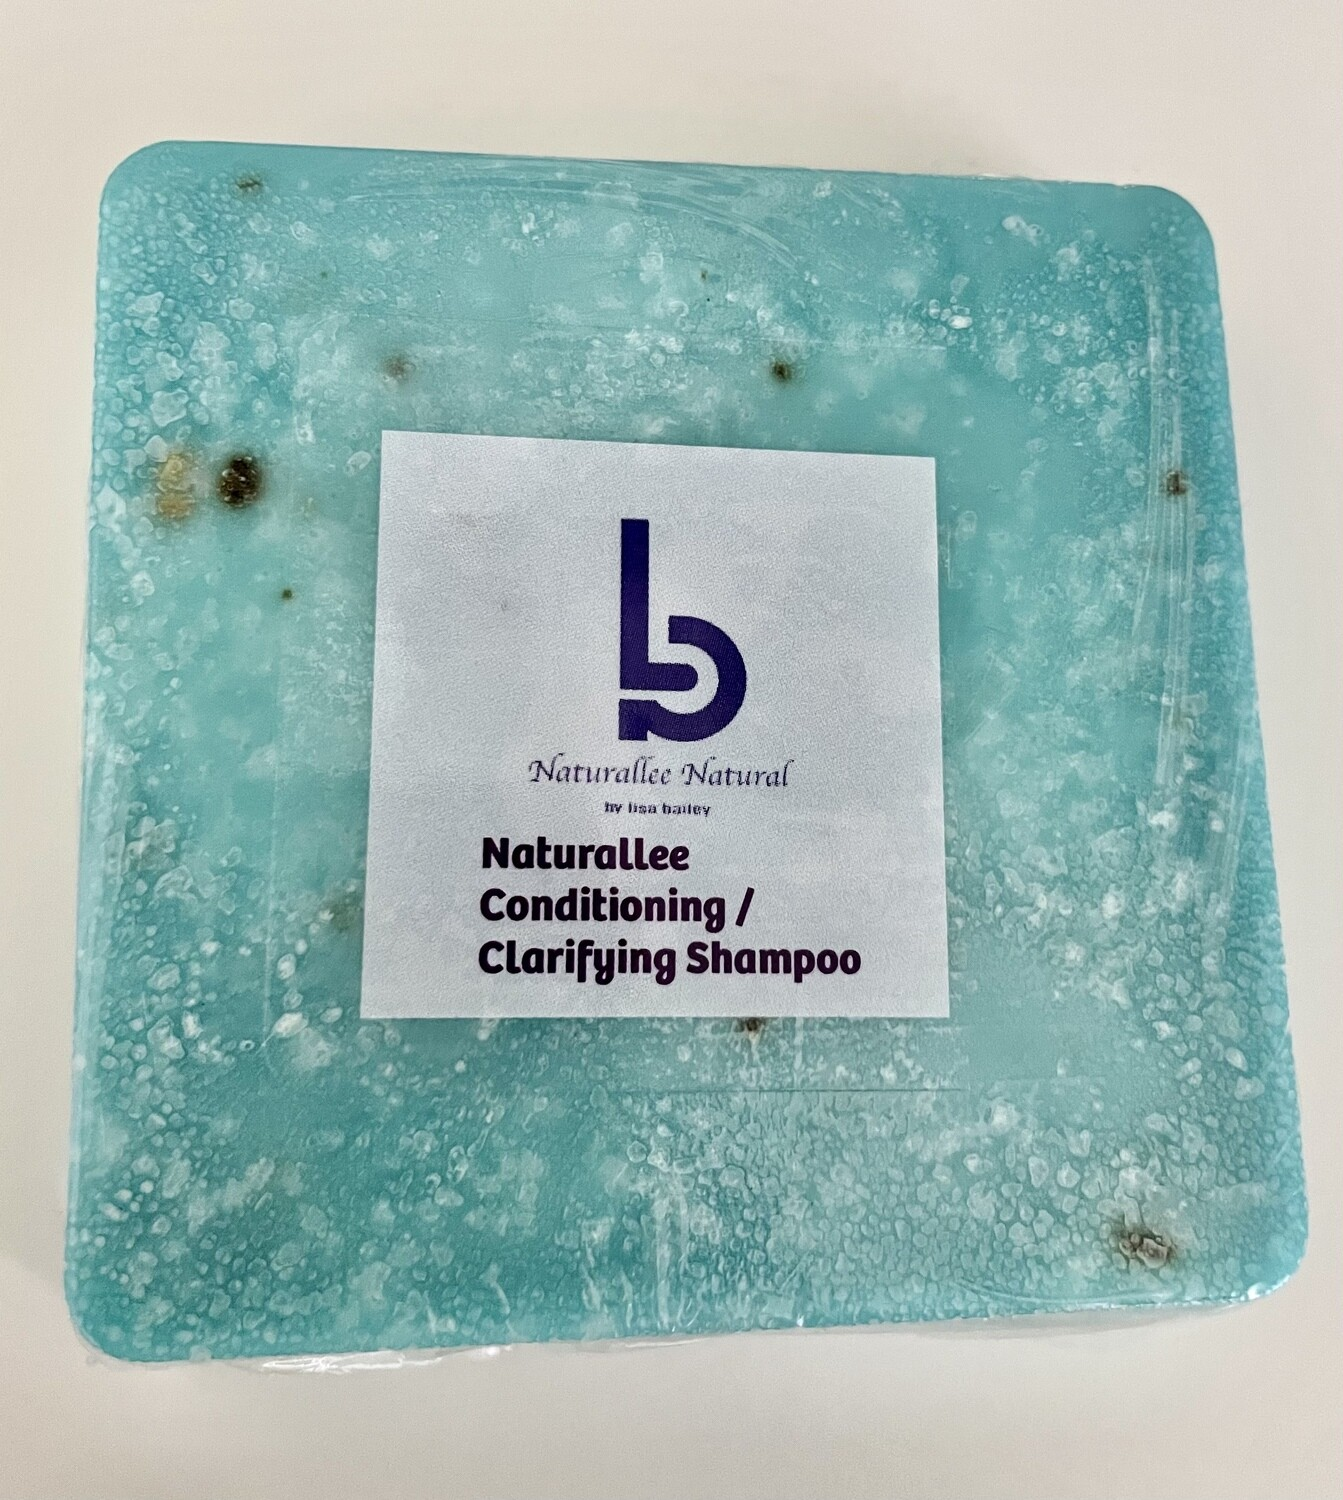 Naturallee Conditioning/ Clarifying Shampoo Bar.